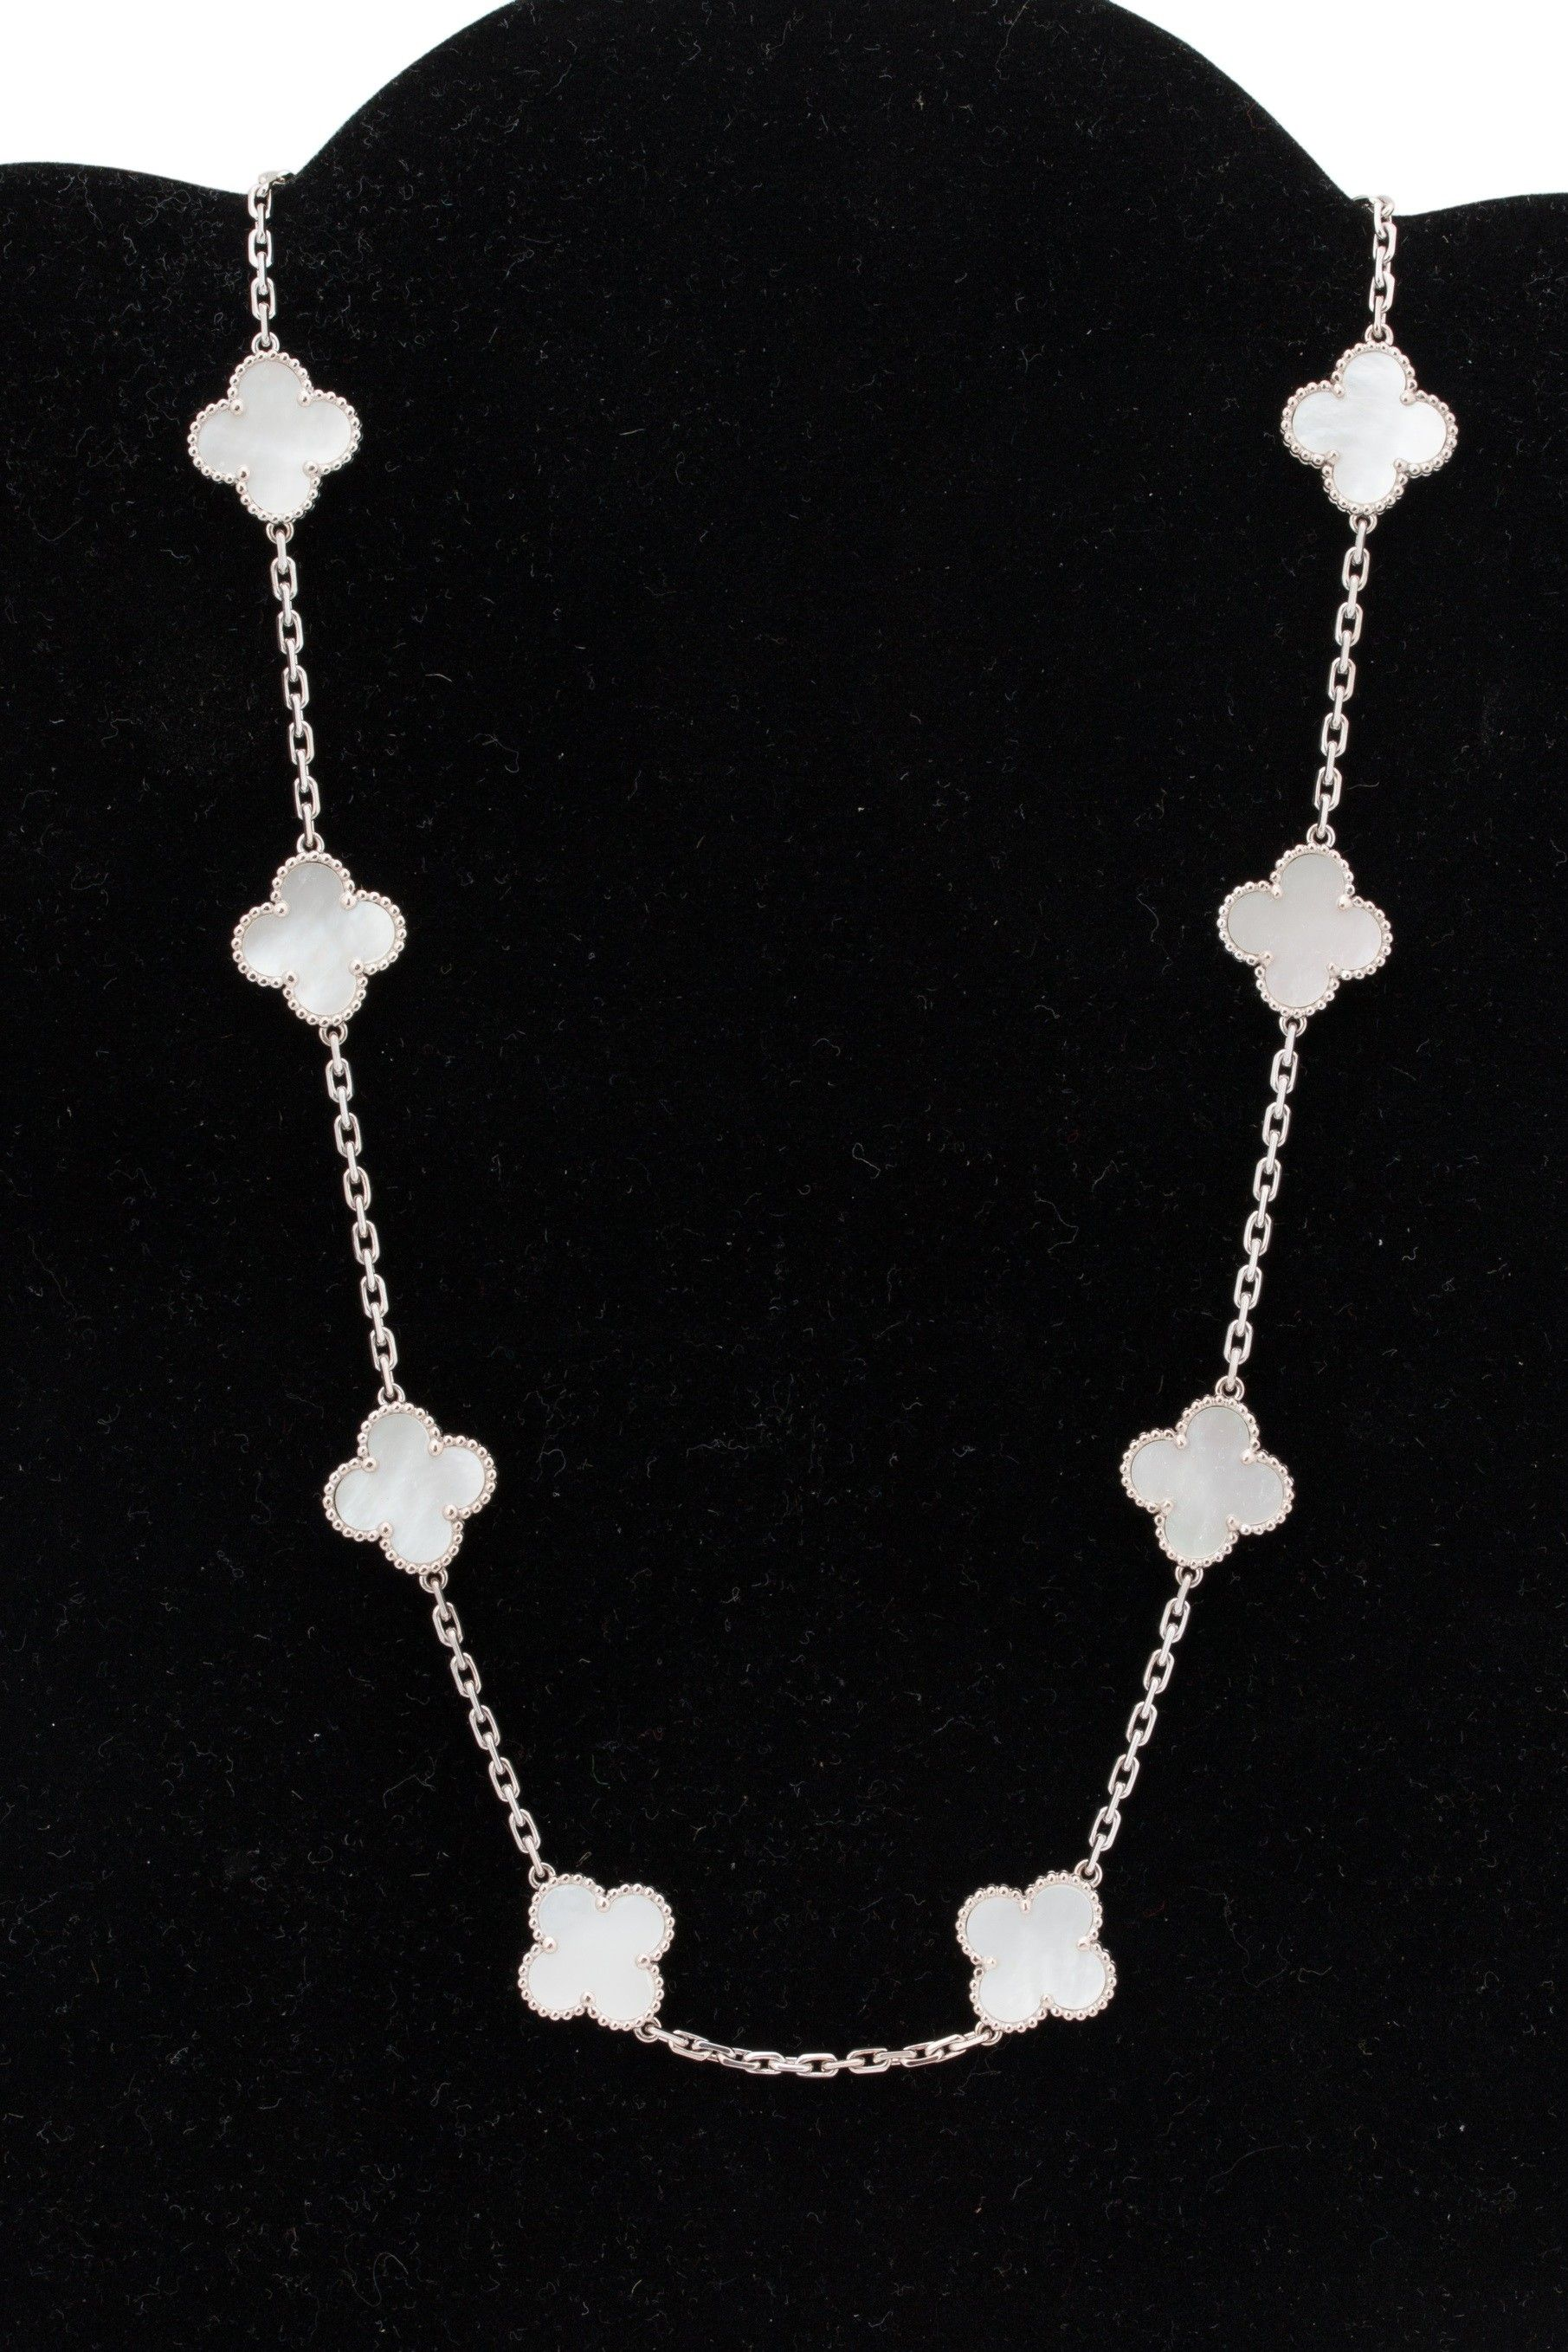 Van Cleef & Arpels Vintage Alhambra 18k White Gold And Mother Of Pearl  Necklace, 10